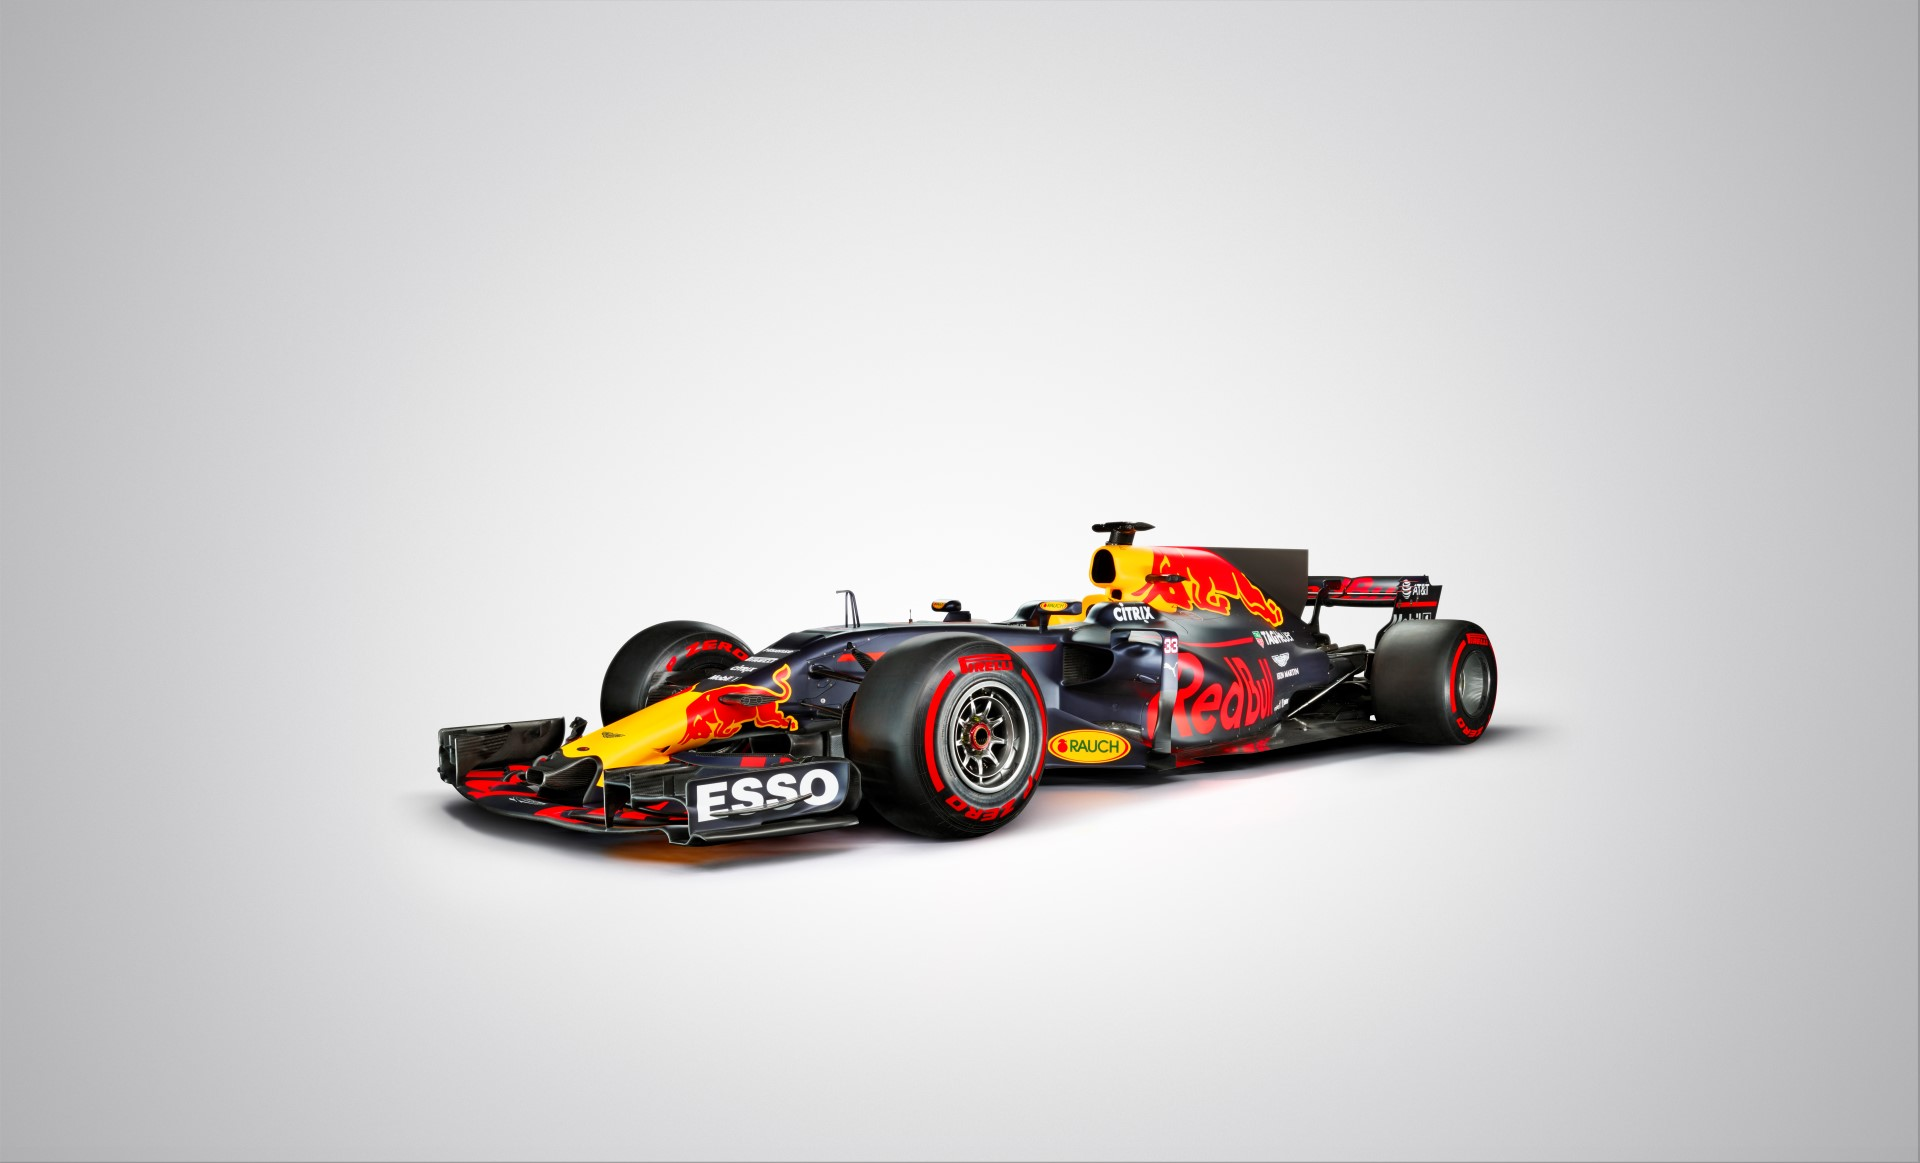 RB13 is seen during a studio shoot in London, United Kingdom on February, 2017